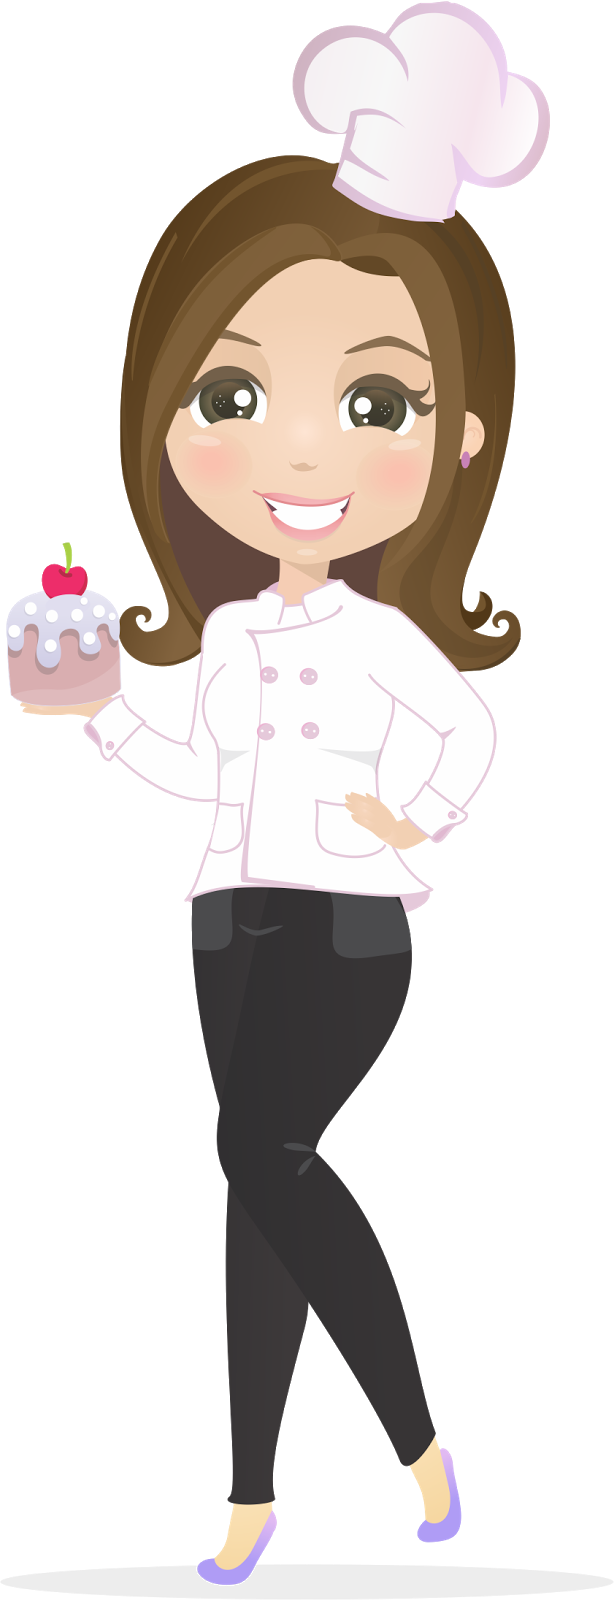 Pie clipart girl baker. Pin by atelier das